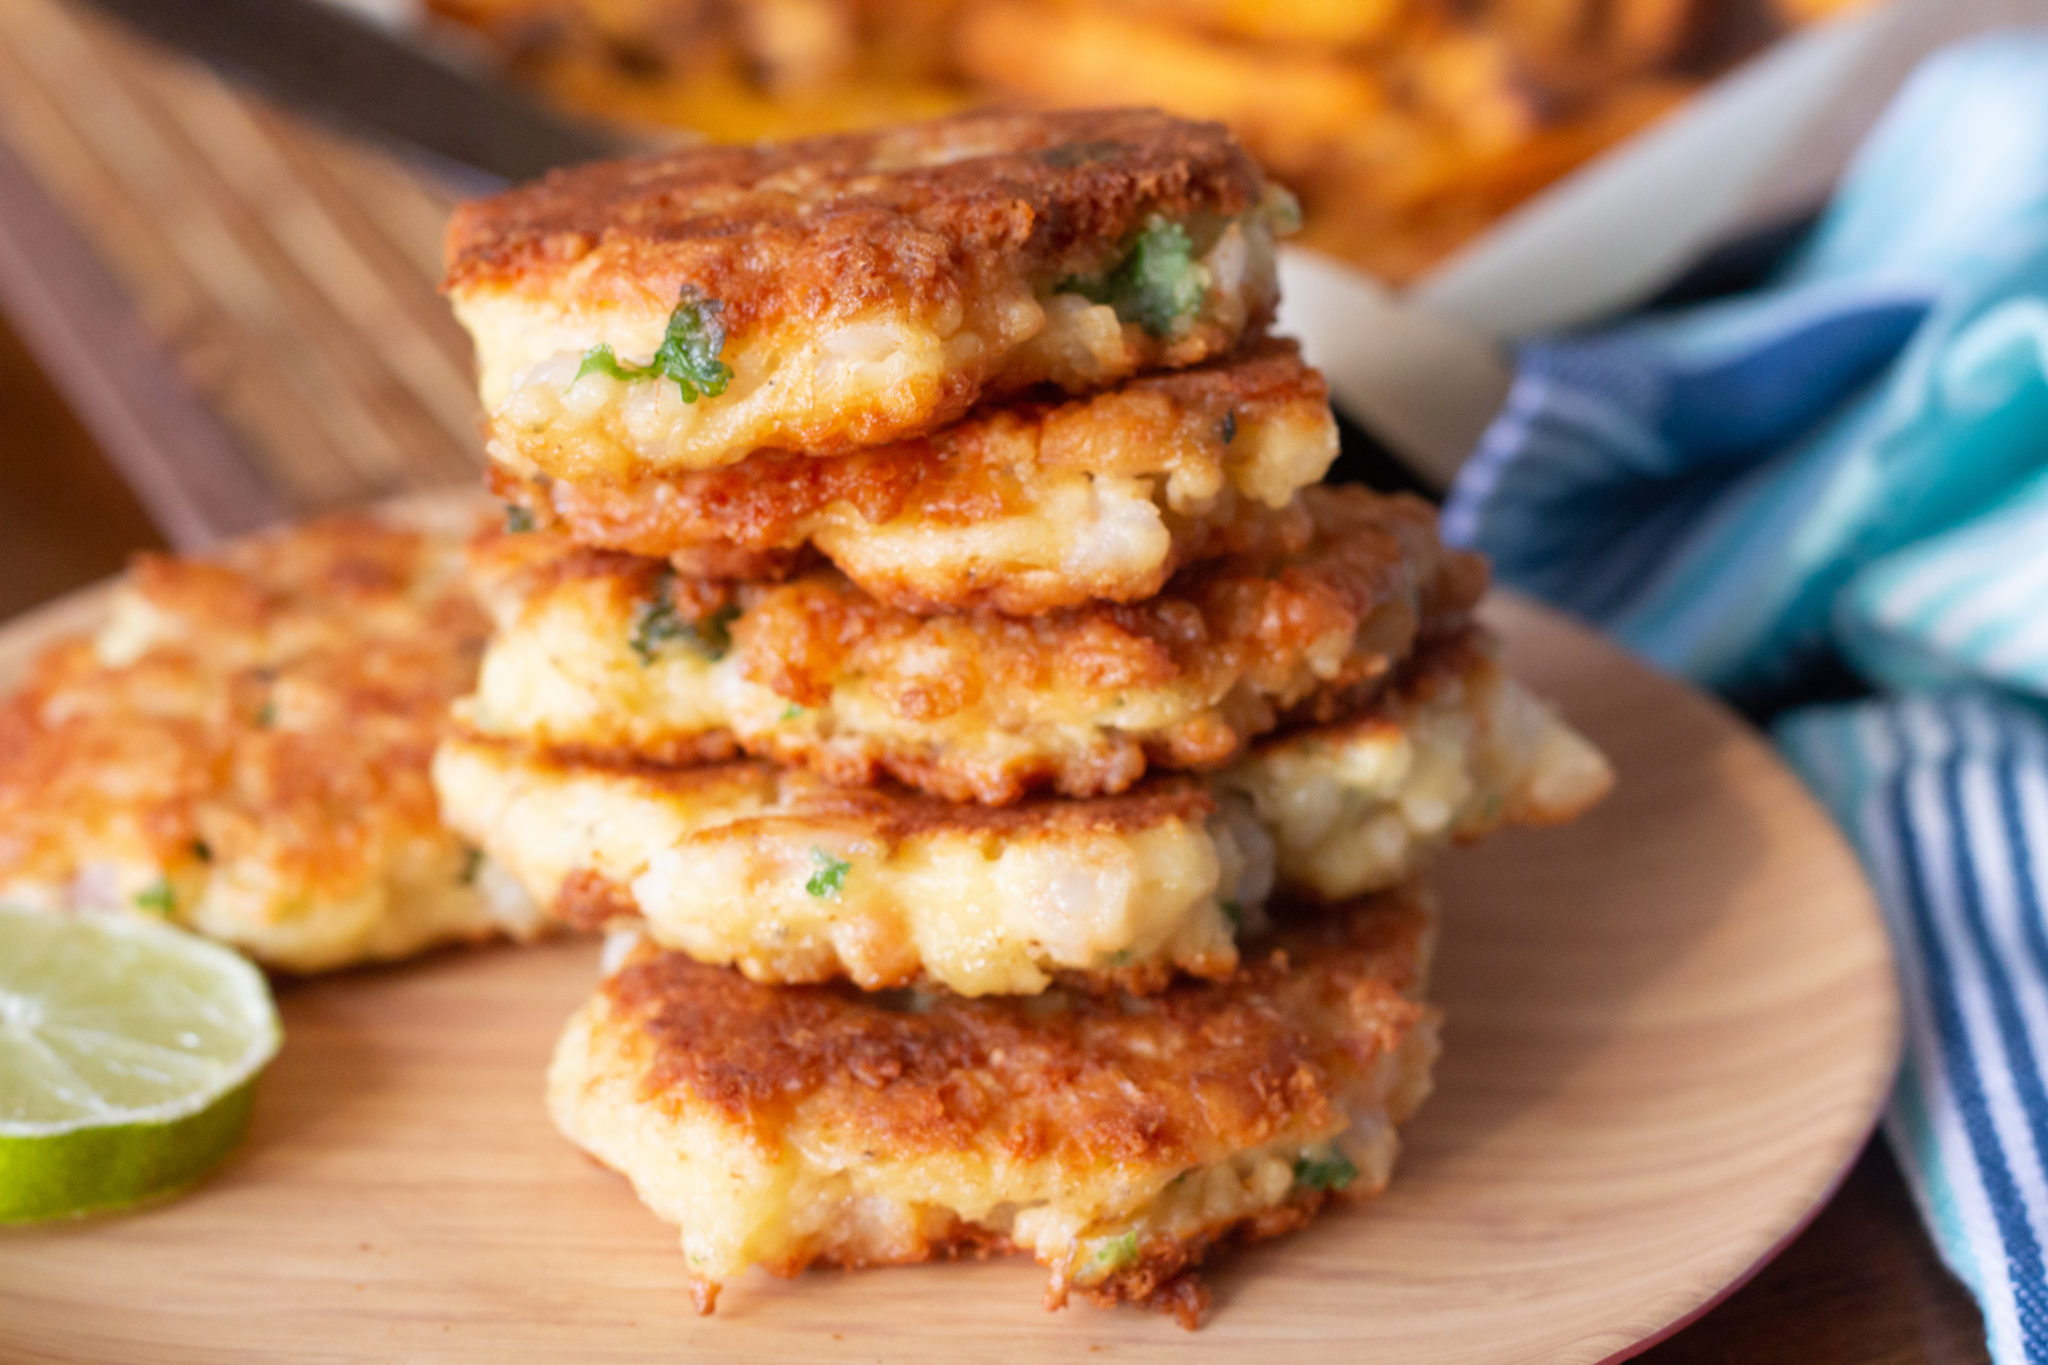 Tasty Homemade Cheesy Shrimp Patties